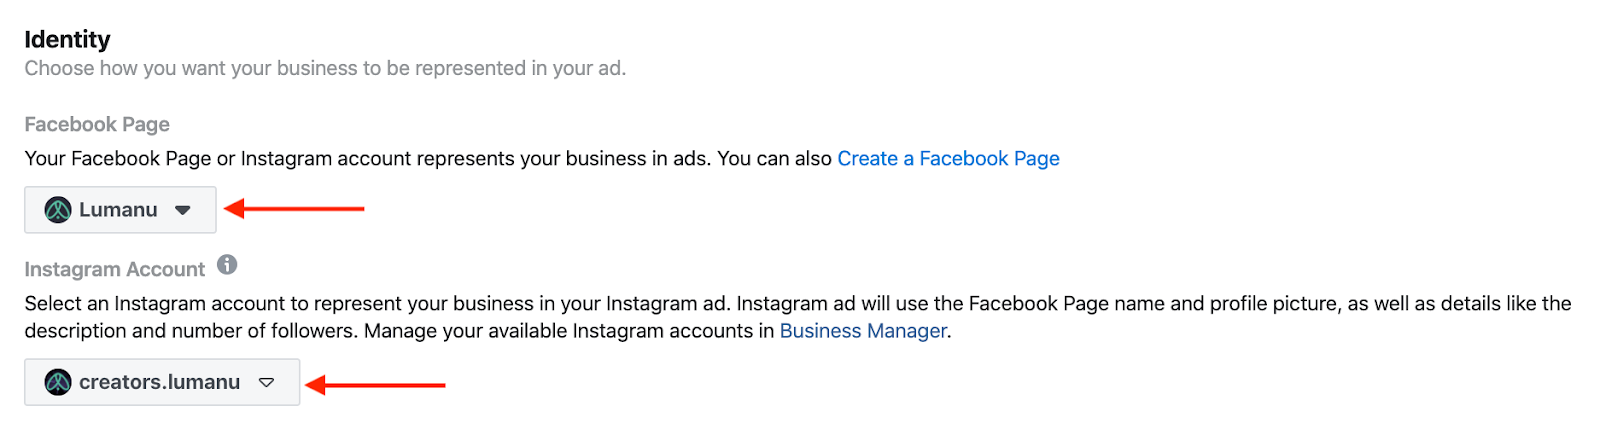 Setting ad identity in Facebook Ads Manager